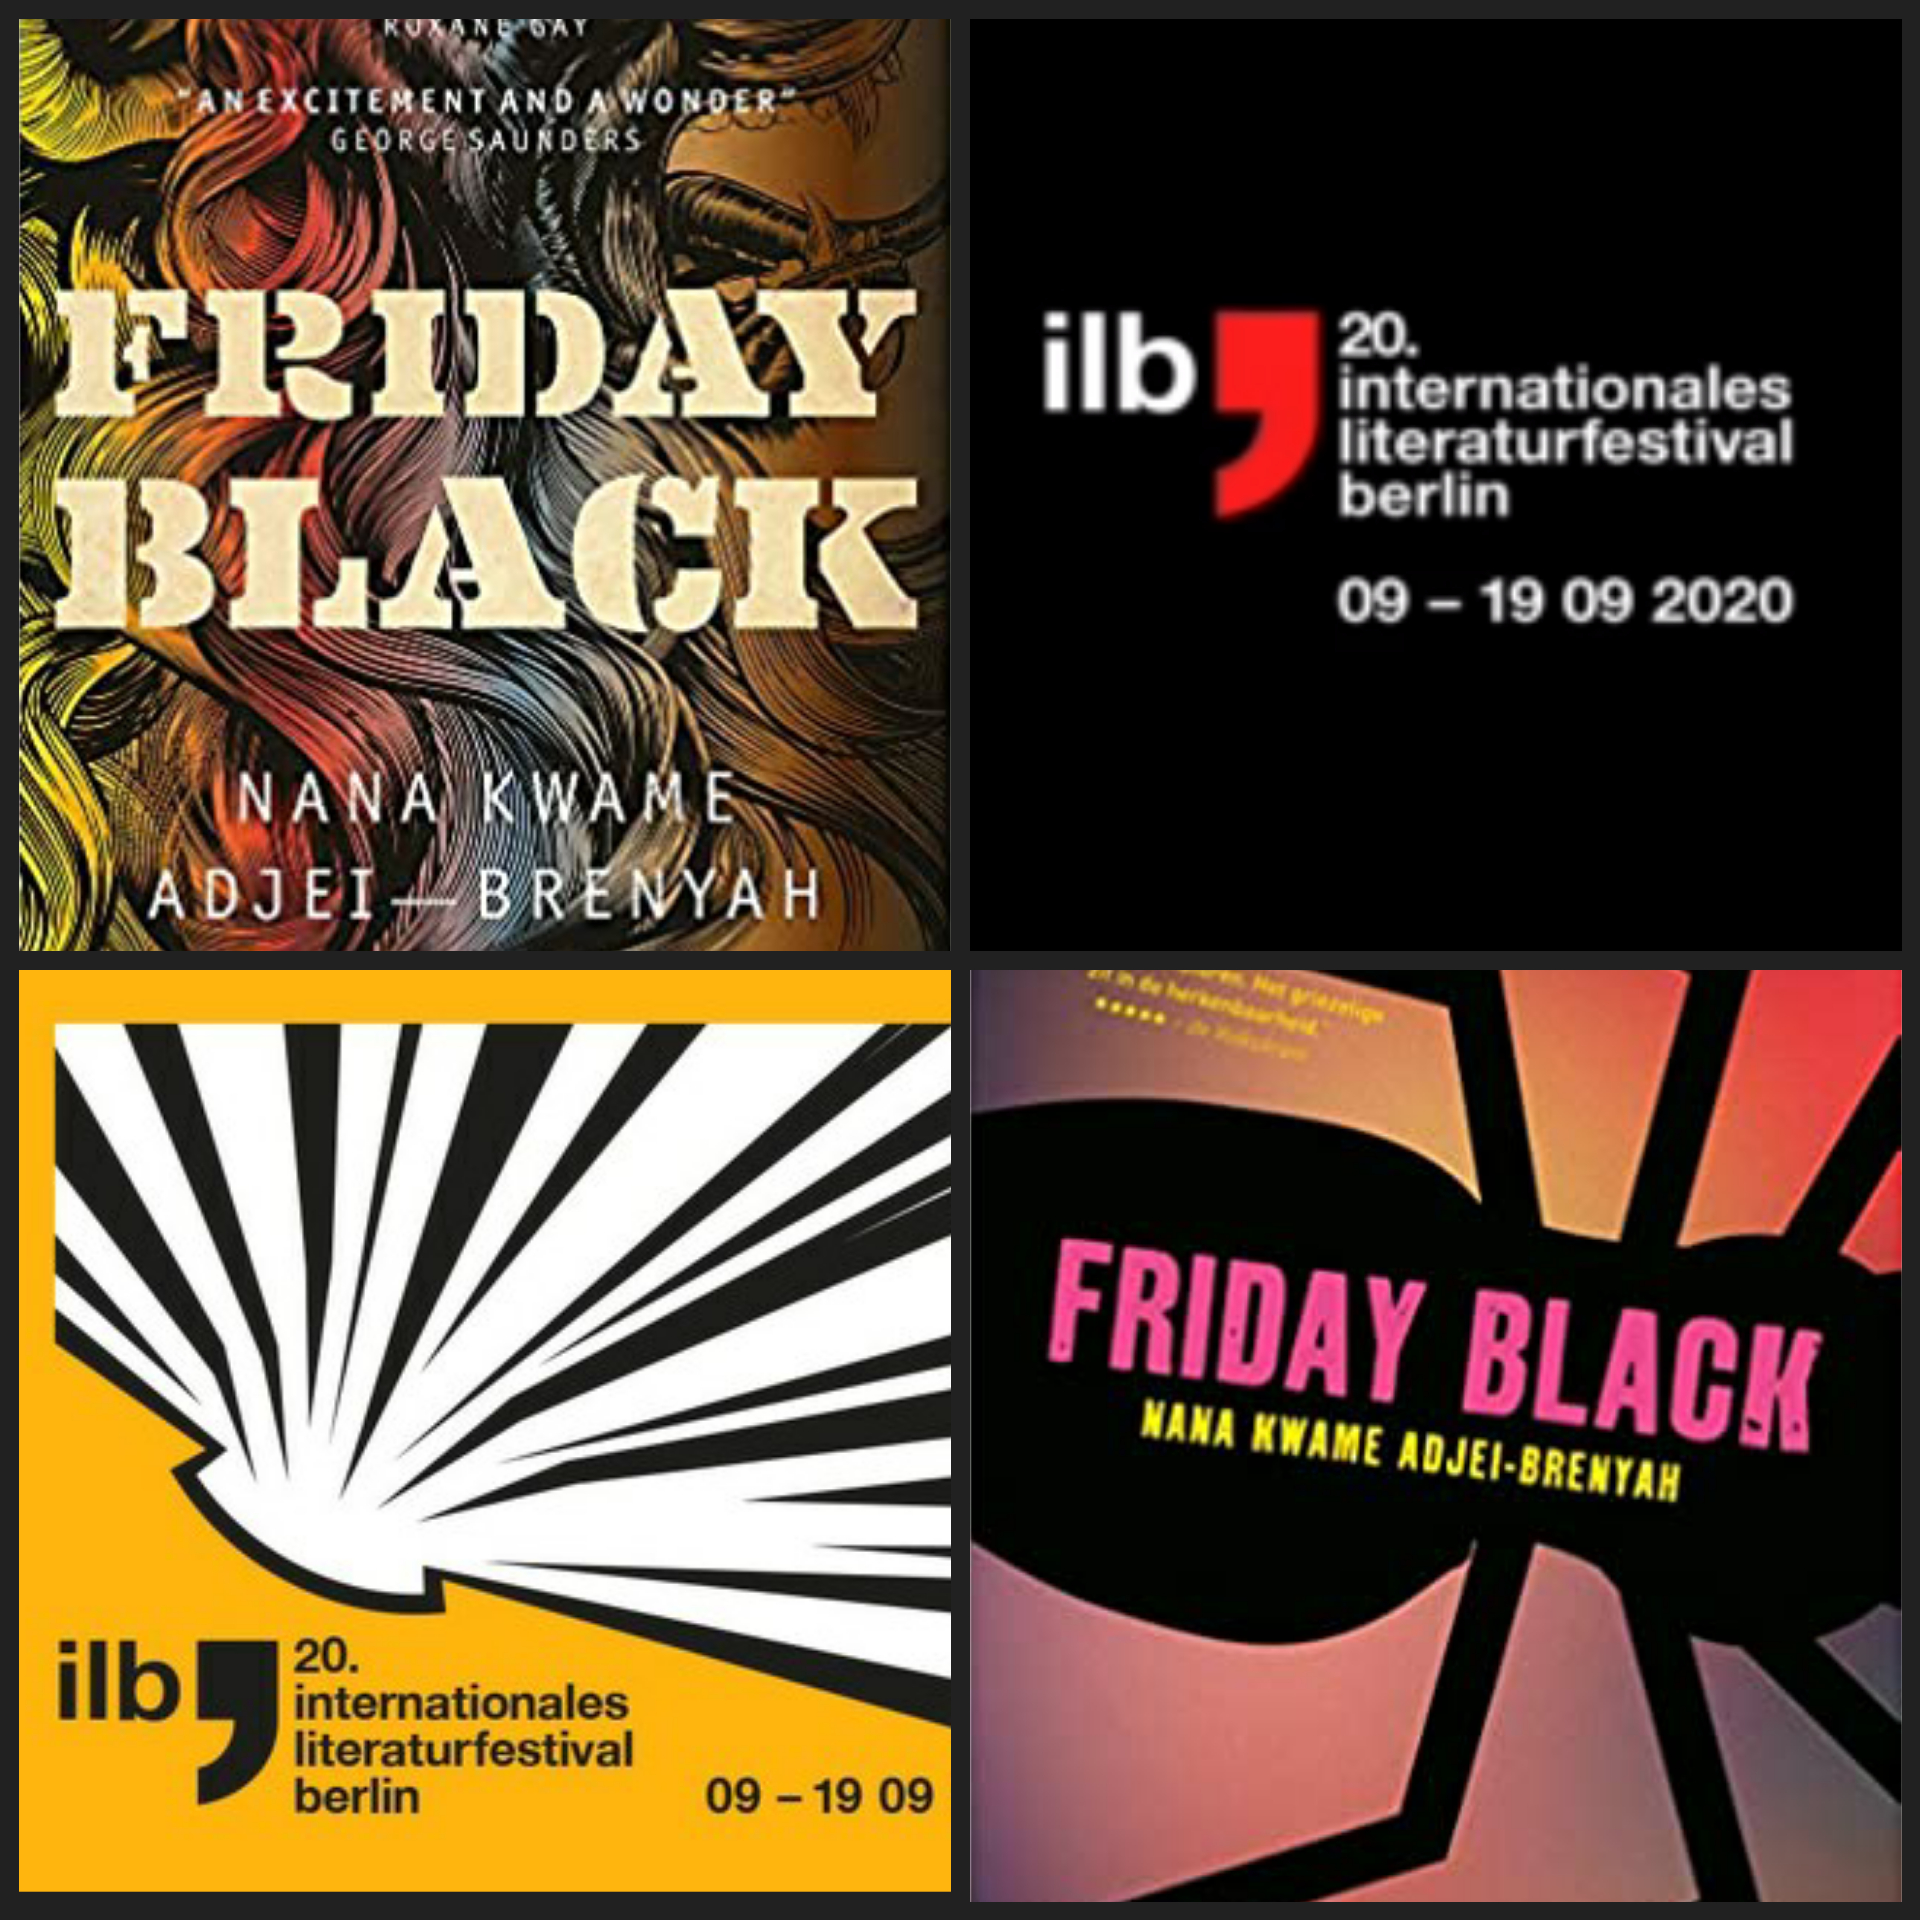 Friday Black by Nana Kwame Adjey-Brenyah: an ilb event